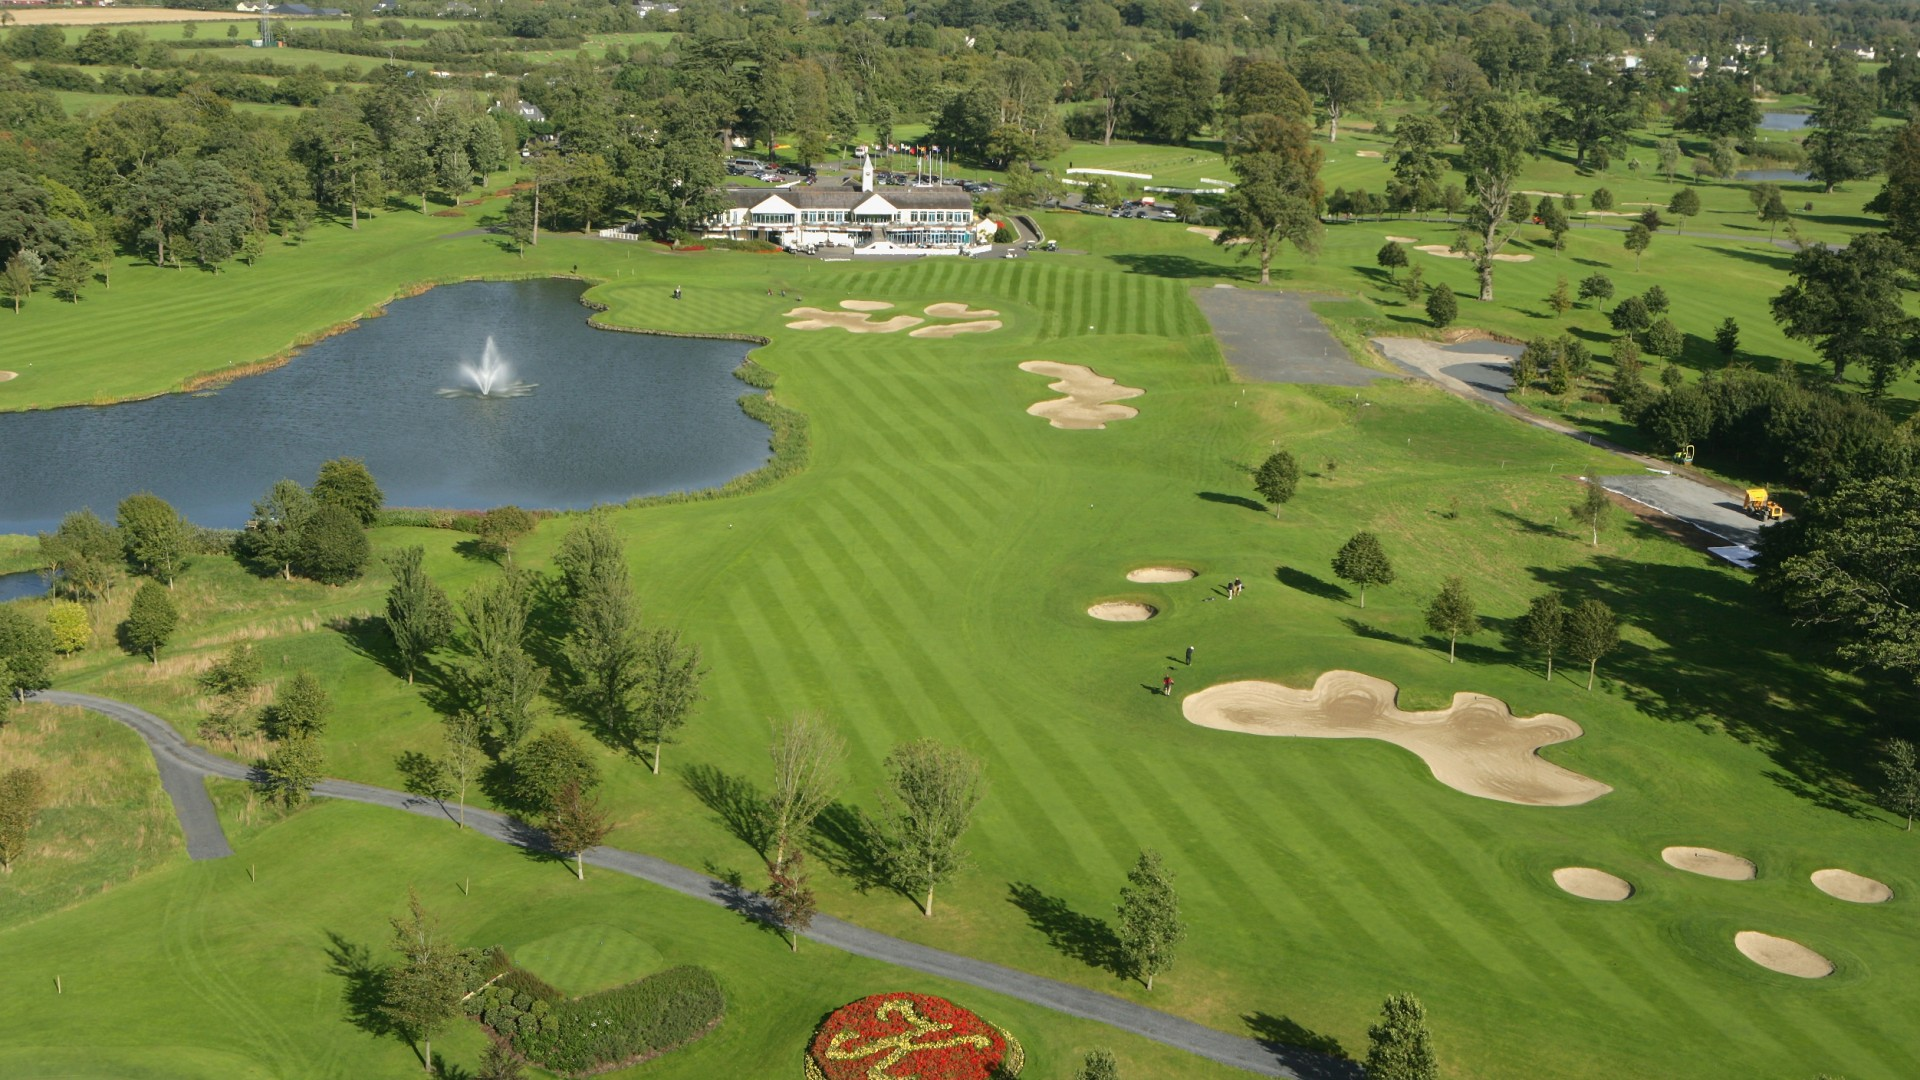 The K Club, The Palmer course, County Kildare, Ireland